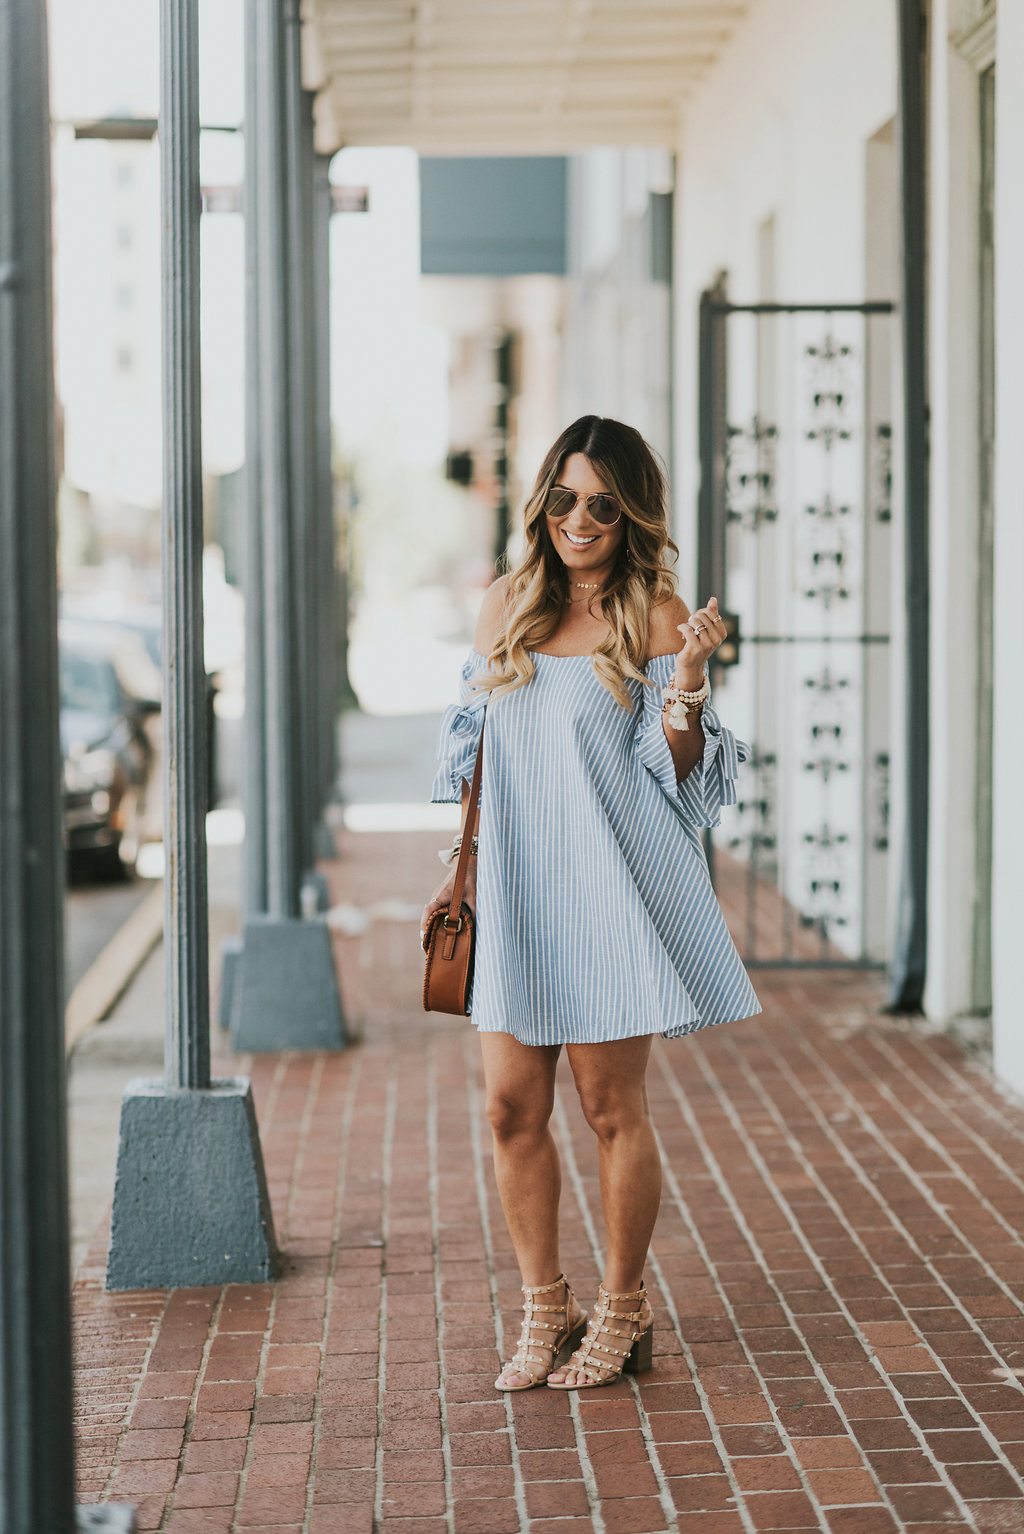 Summer dresses for under $20. Read more to find all of the hottest summer trends.